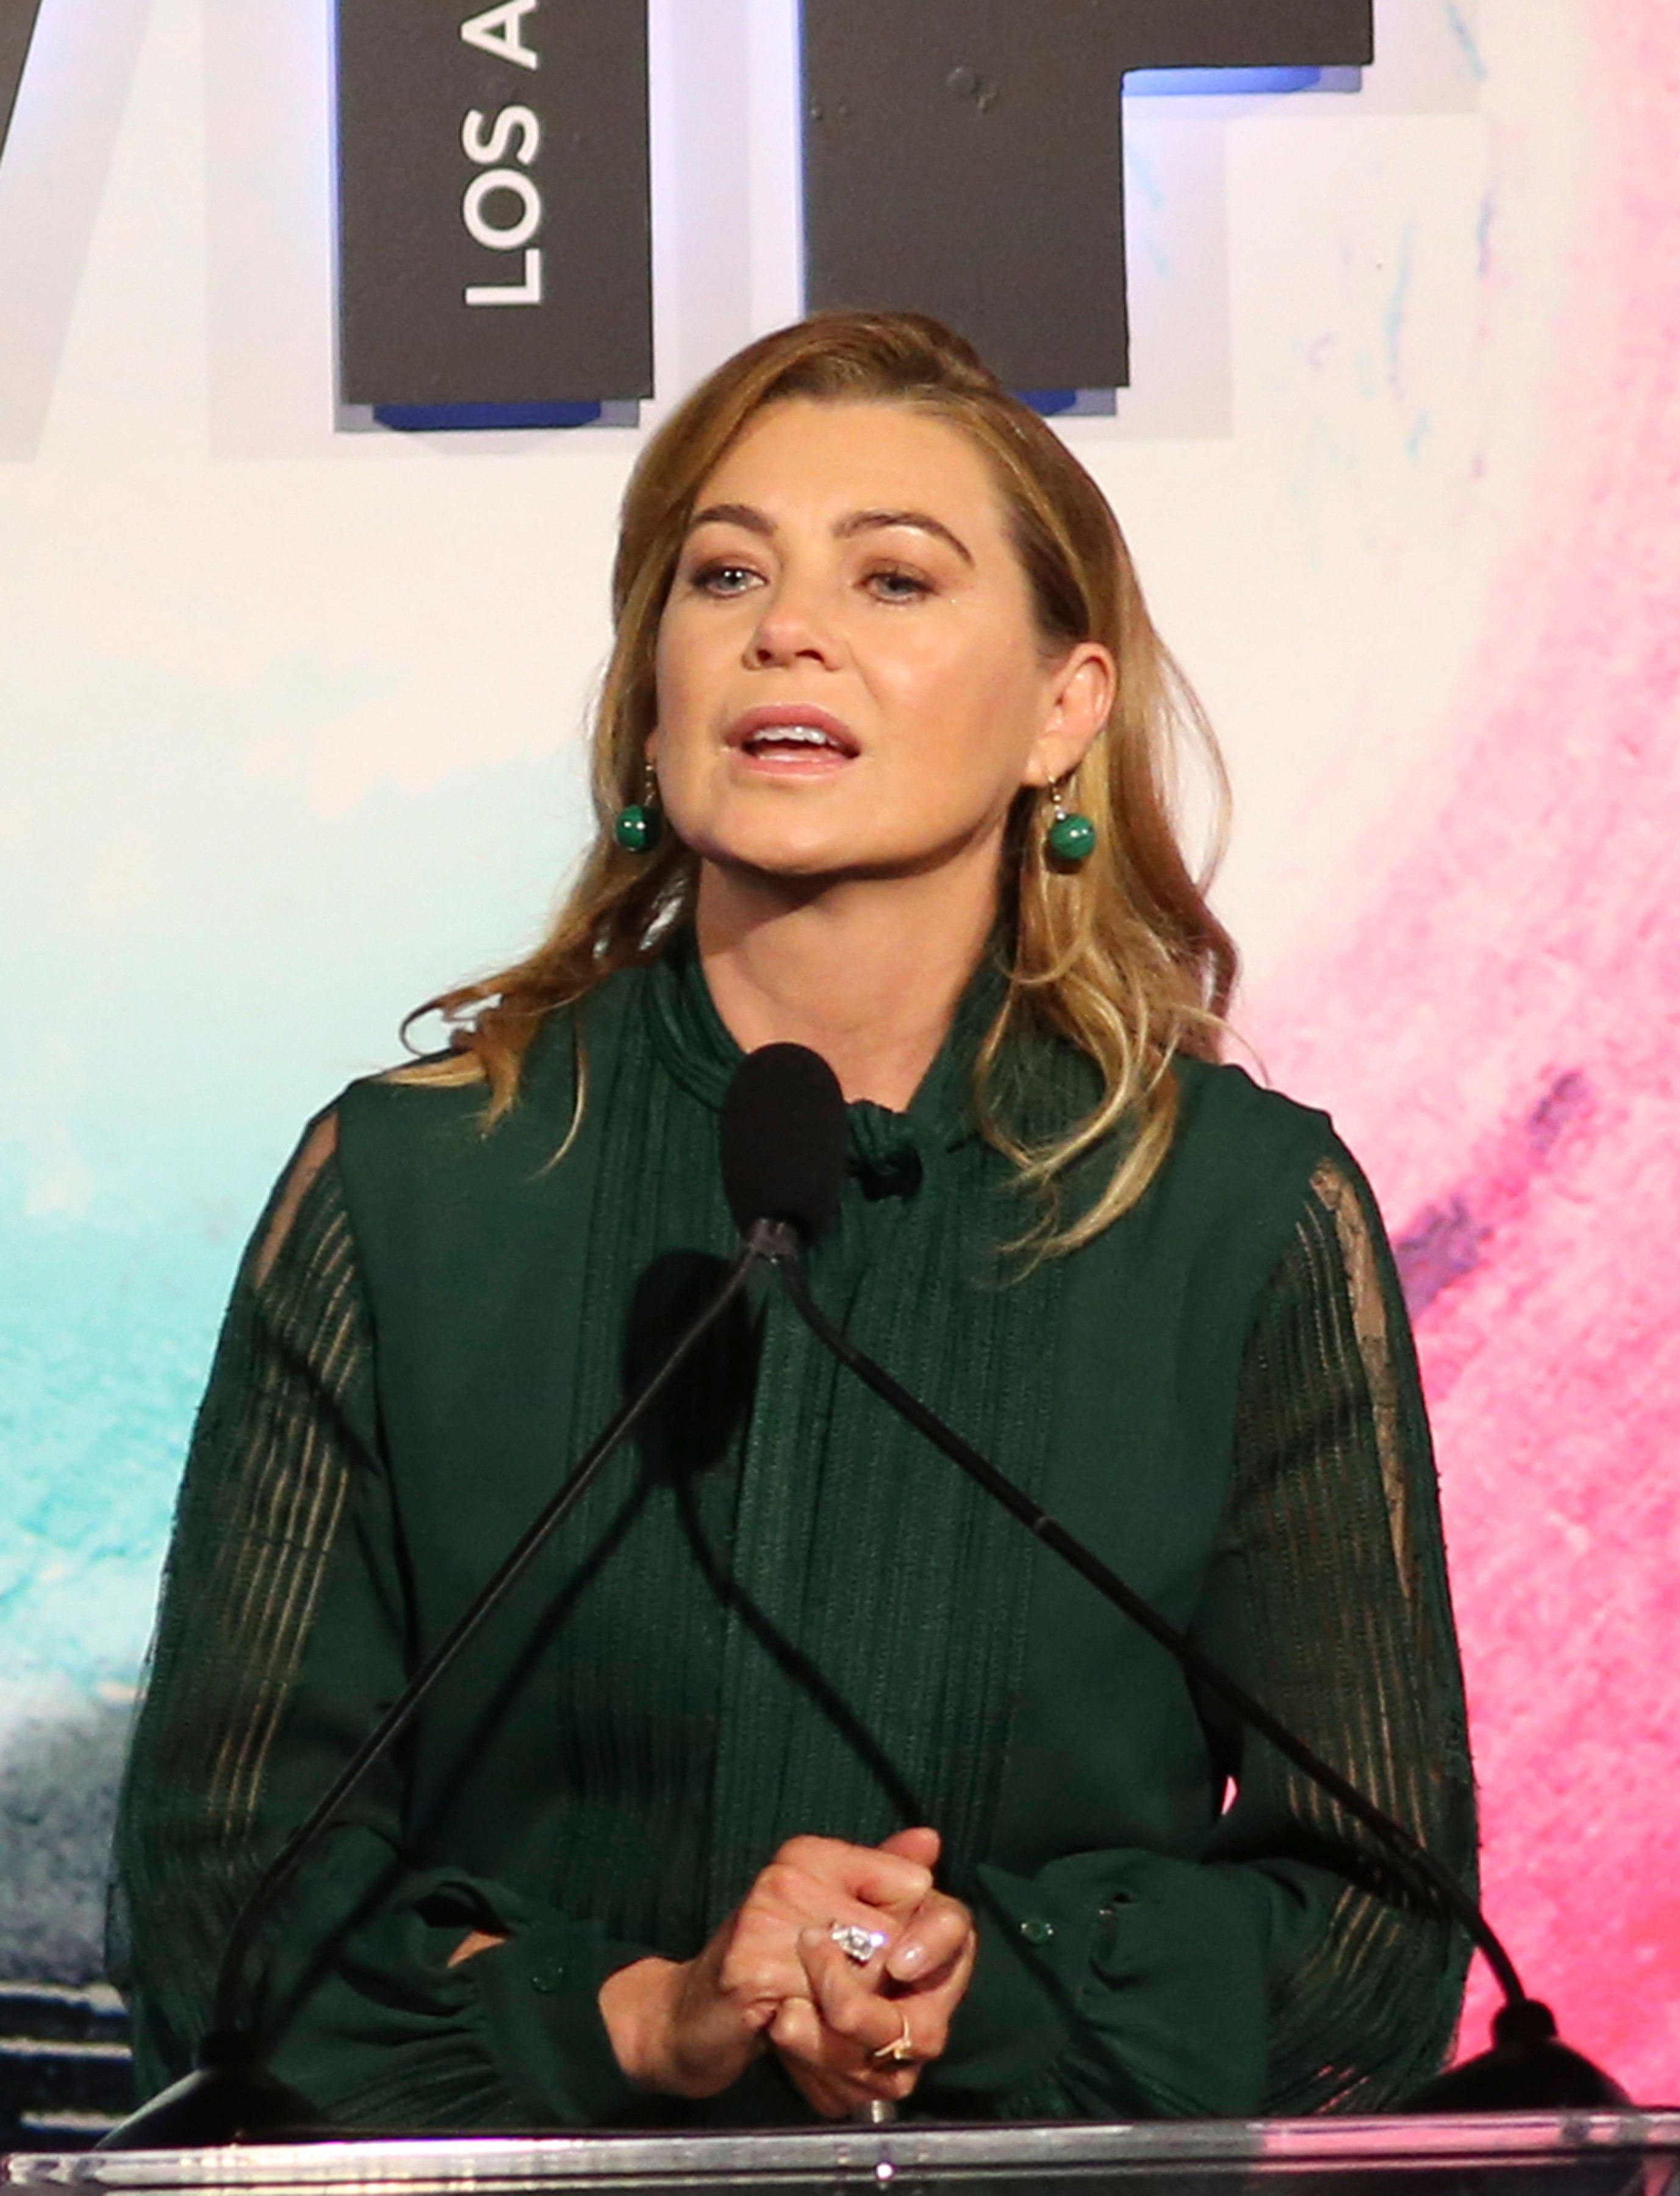 Ellen Pompeo Calls Out Magazine For Lack Of 'Color' In Middle Of